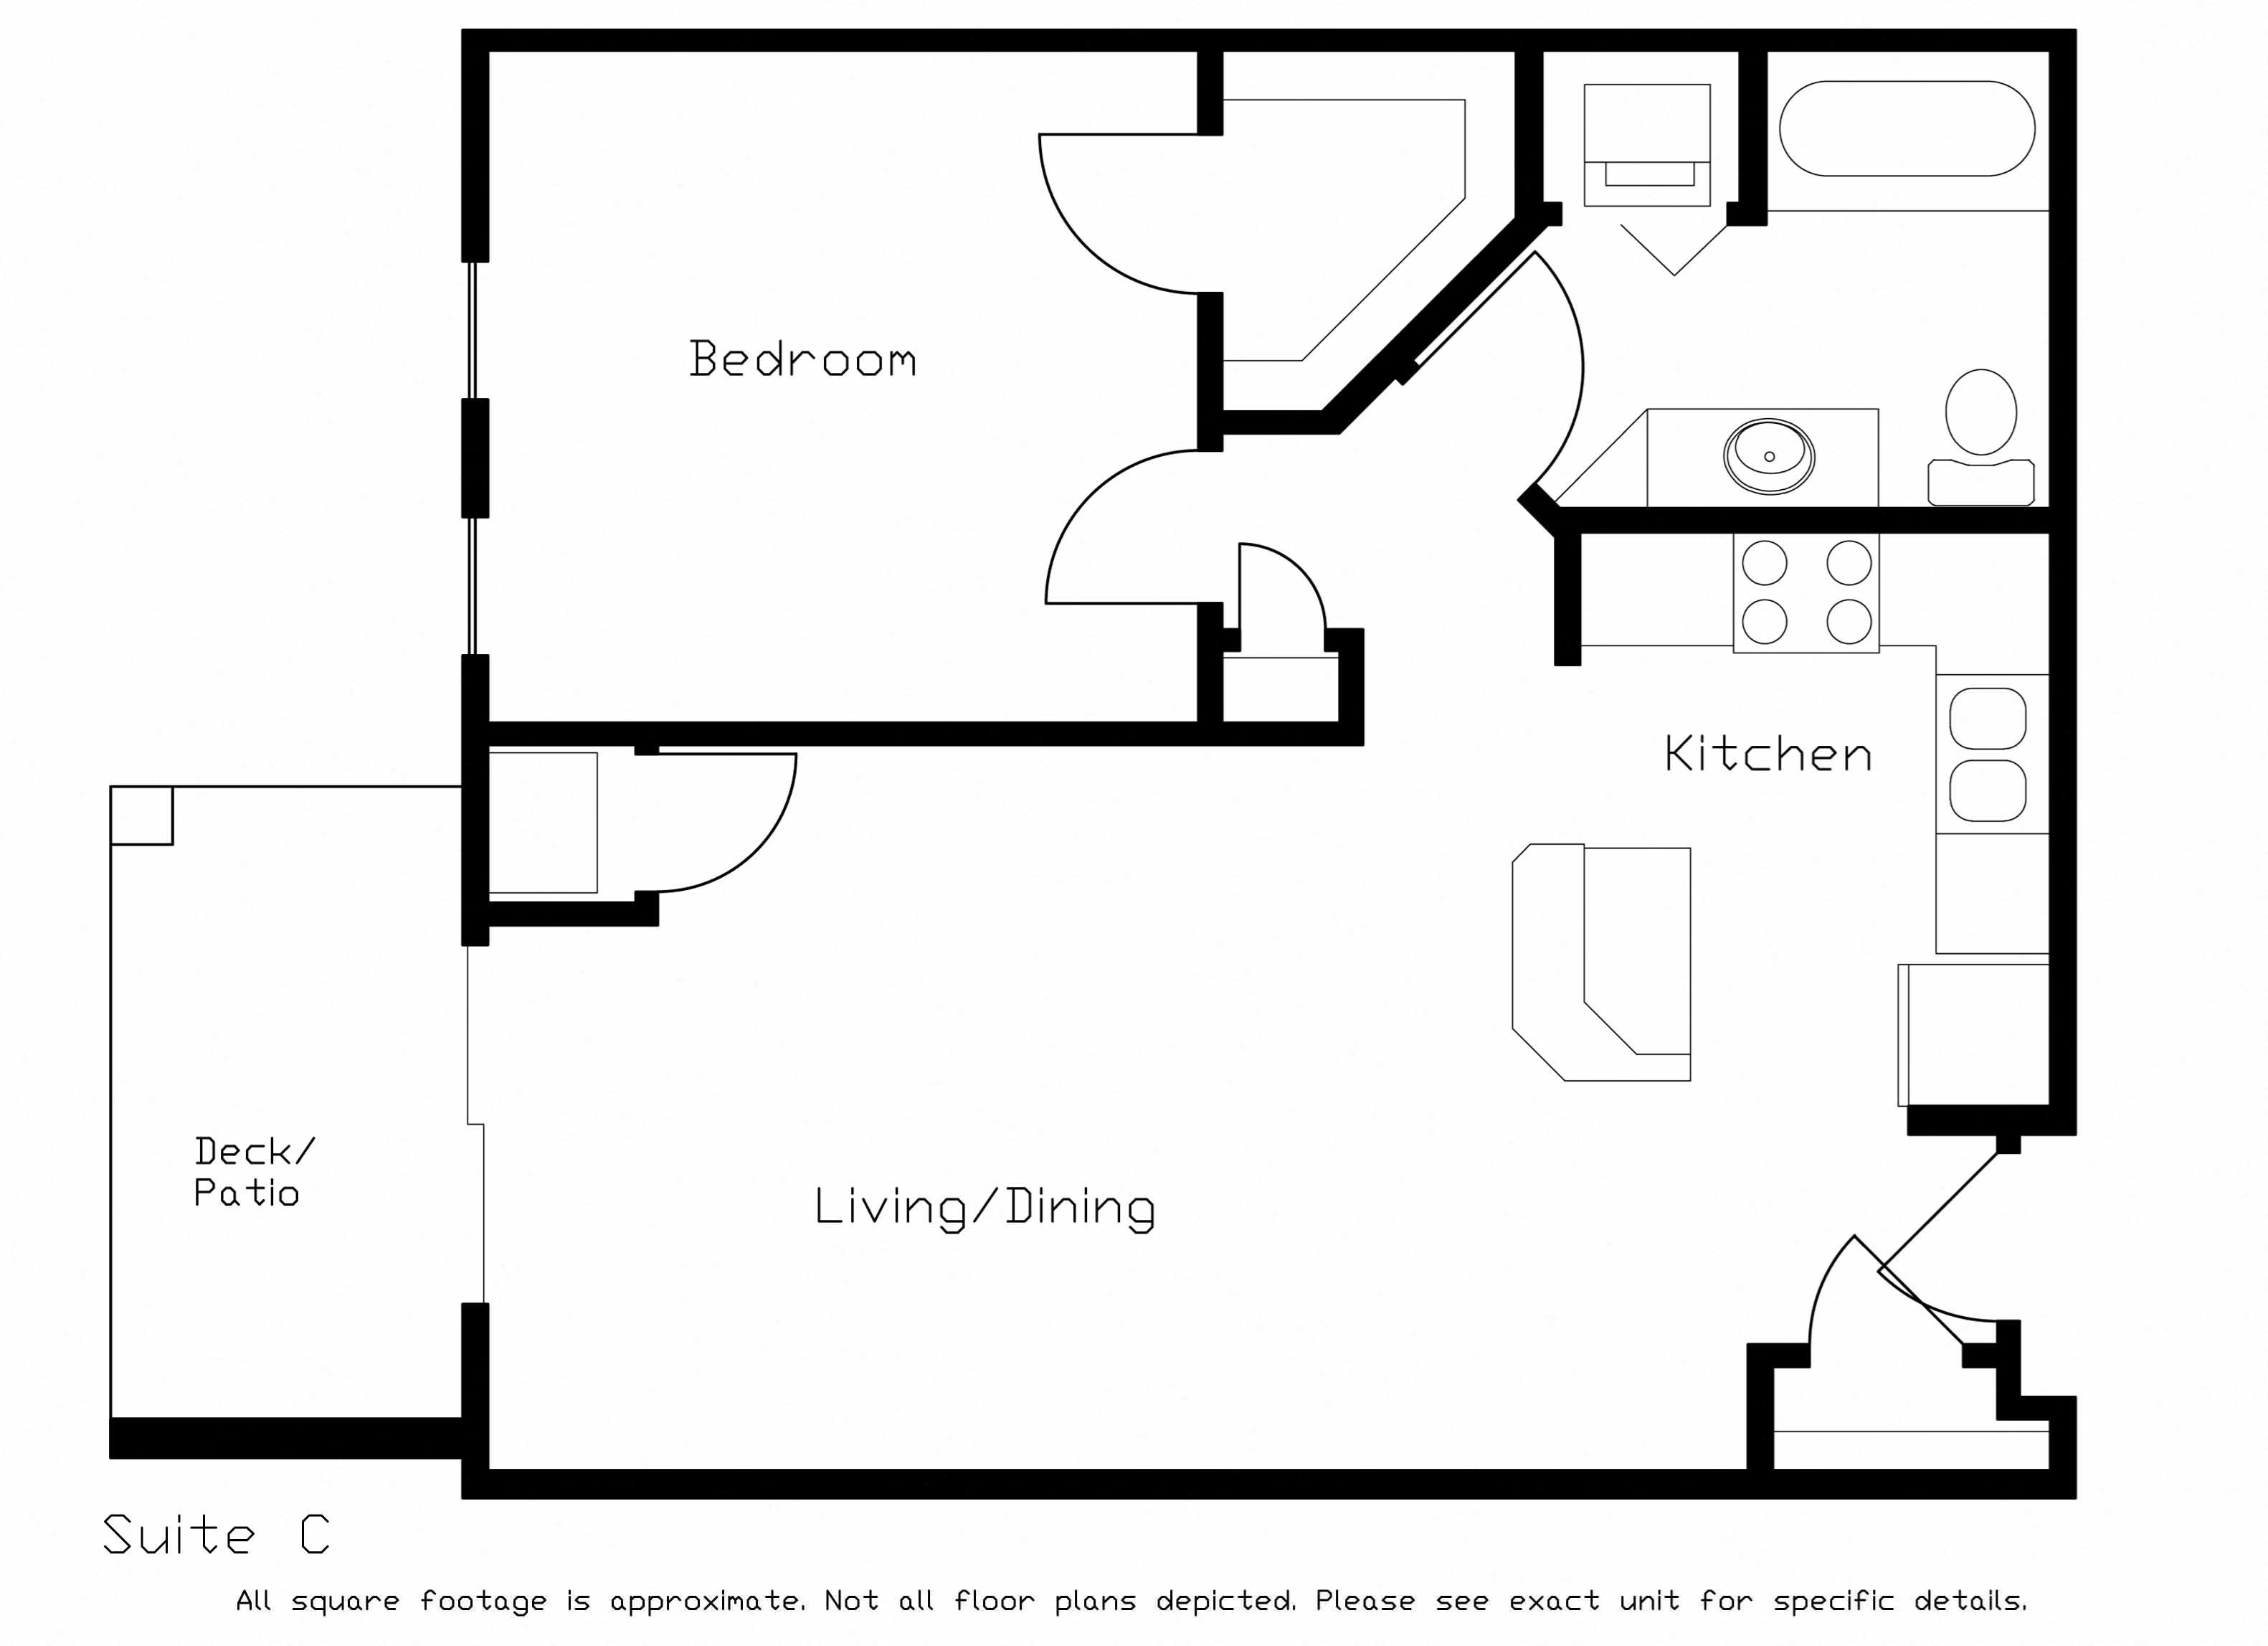 Woodland Fields Apartments In Madison Wi Actually Prefer To Get Several Copies Of My Floor Plan And Draw Each C2 2